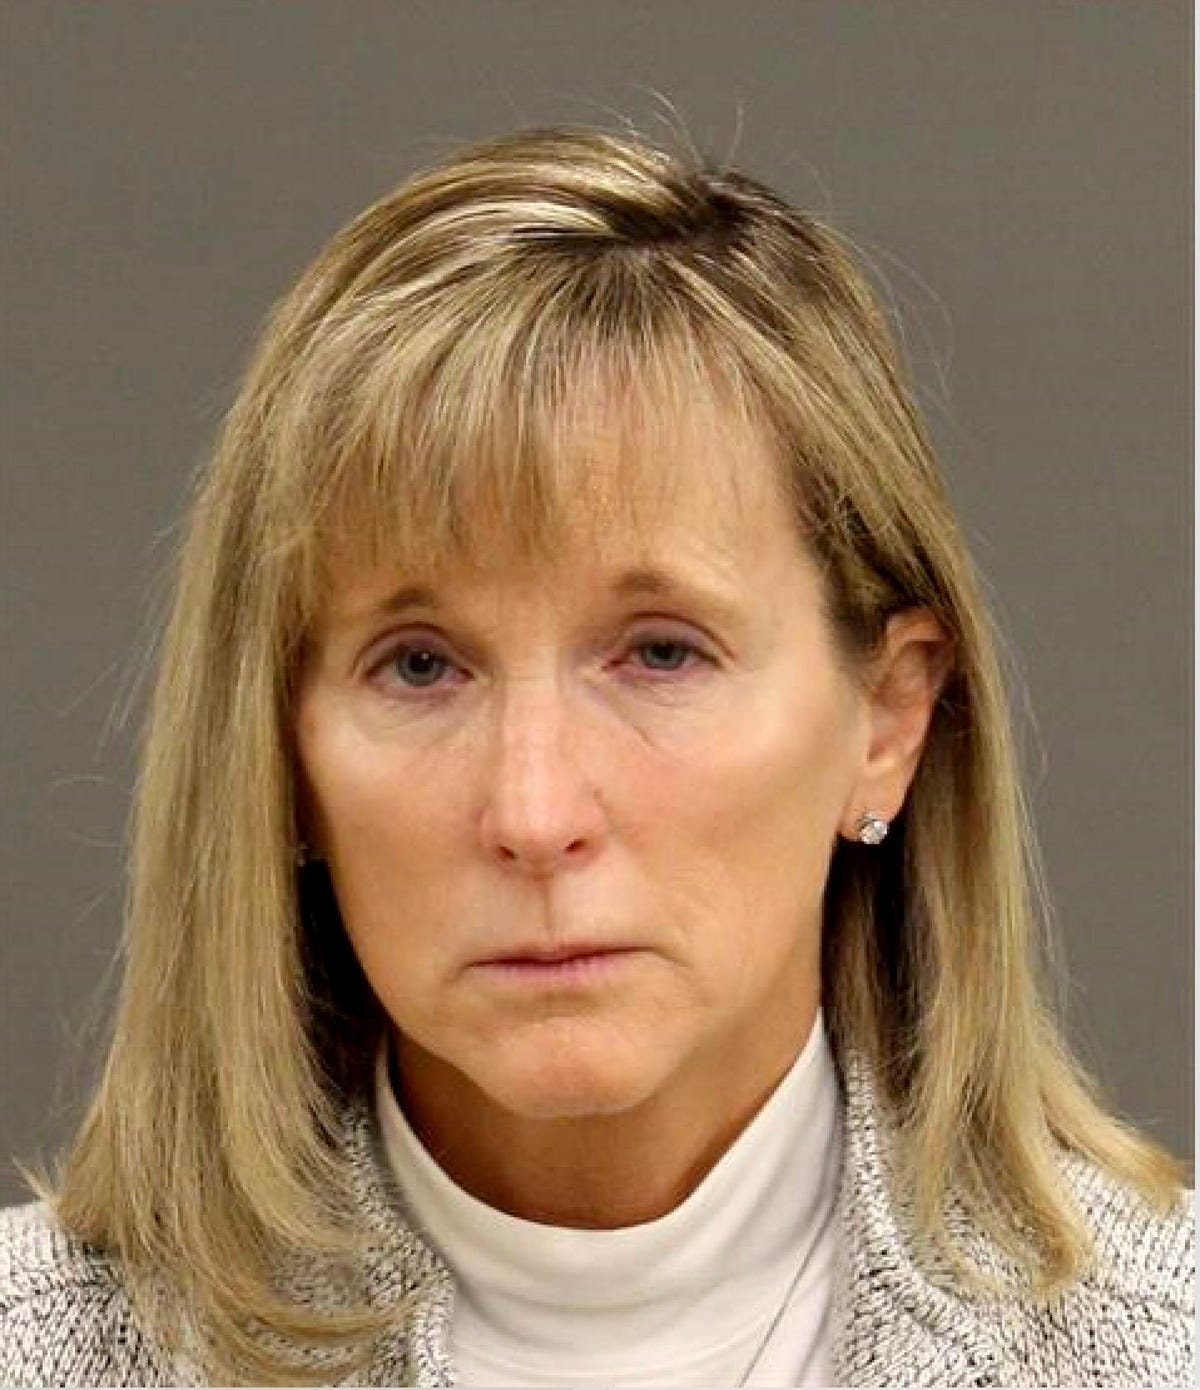 Police: Pinckney woman embezzled $1M from Bloomfield